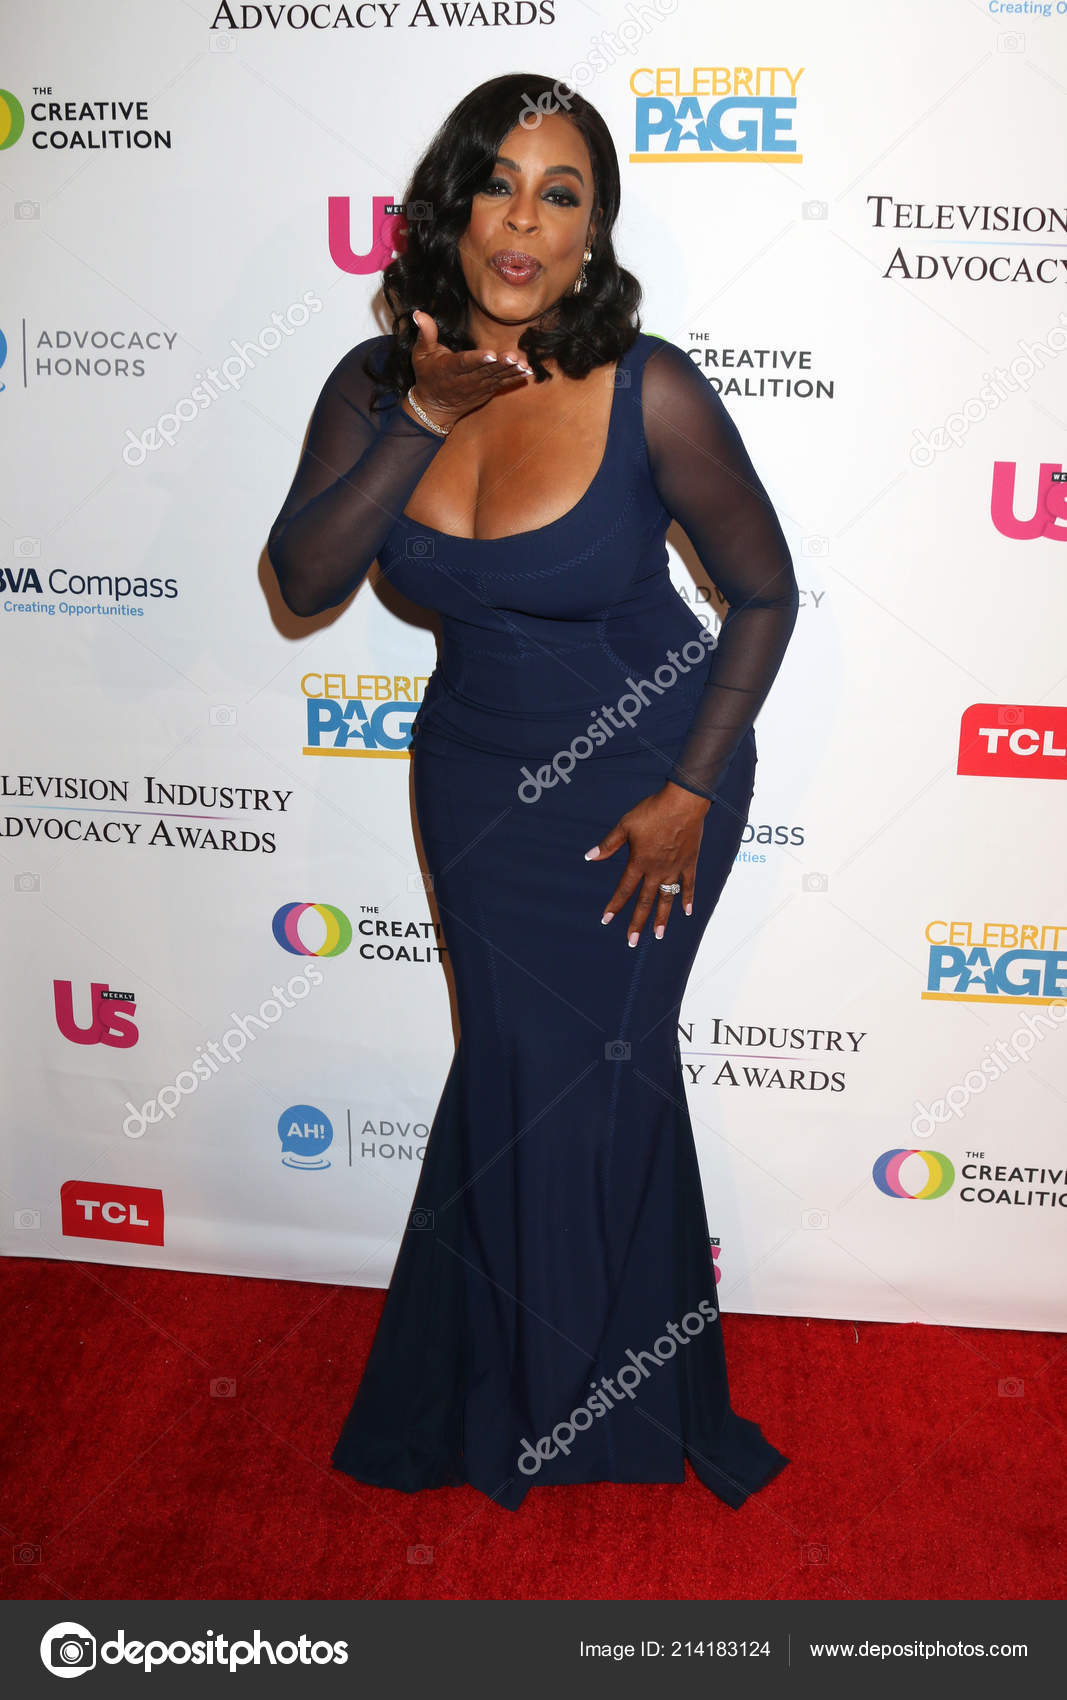 7f2374586e8 LOS ANGELES - SEP 15: Niecy Nash at the 2018 Television Industry Advocacy  Awards at the Sofitel Los Angeles on September 15, 2018 in Beverly Hills,  ...